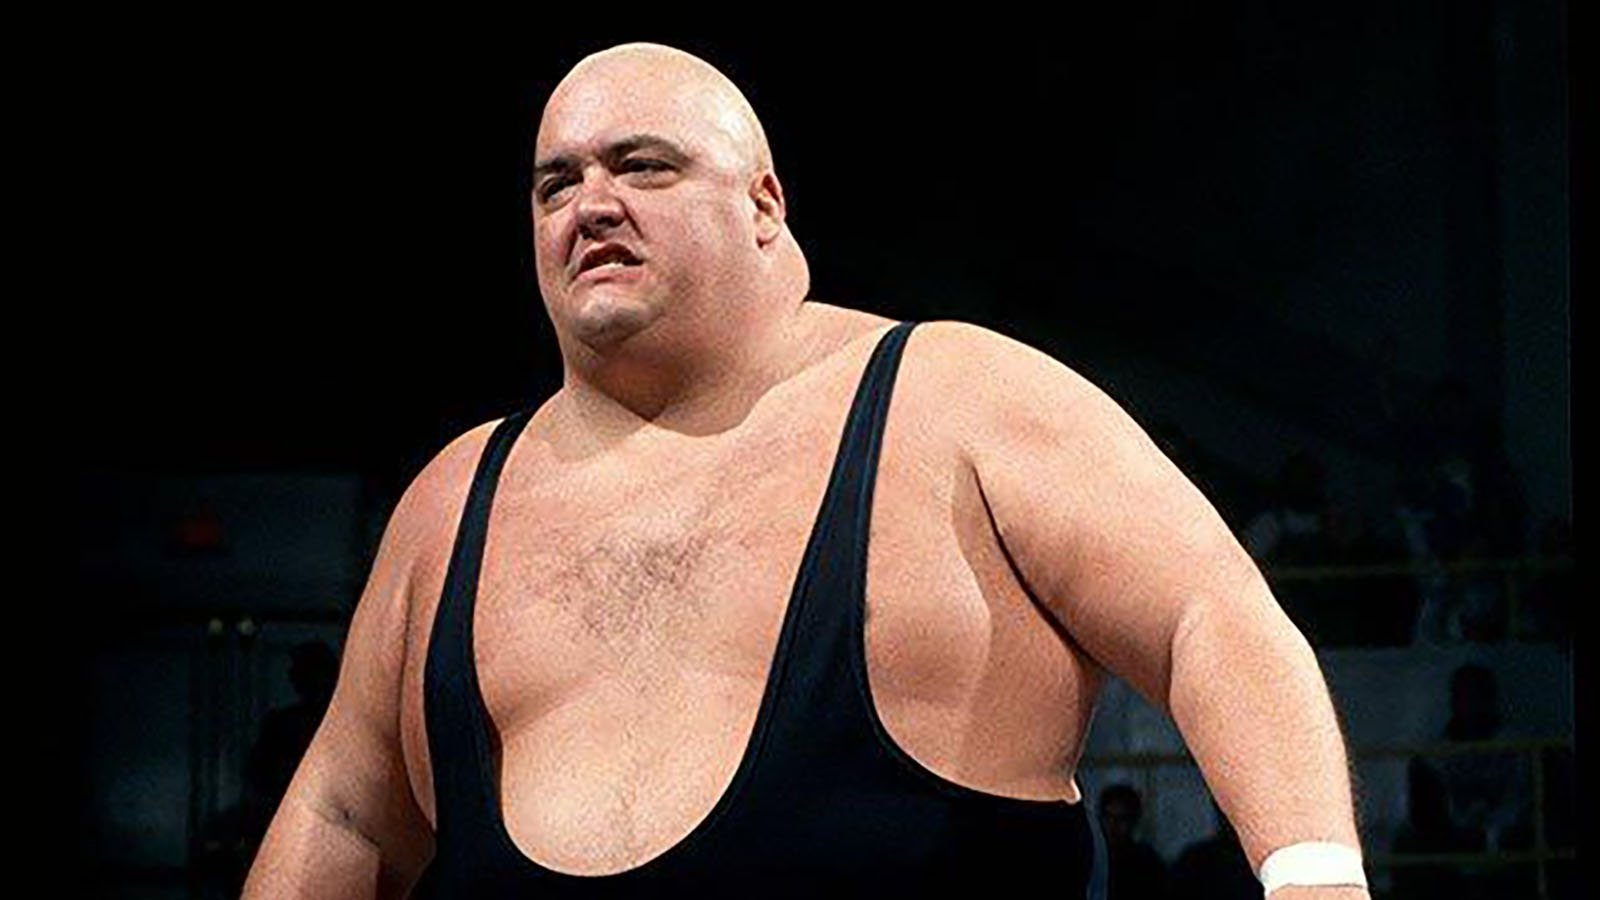 King Kong Bundy, one of the most prominent WWE wrestling stars of the 1980s and 90s, has died at the age of 61, the WWE confirmed. (Credit: WWE via CNN Wire)